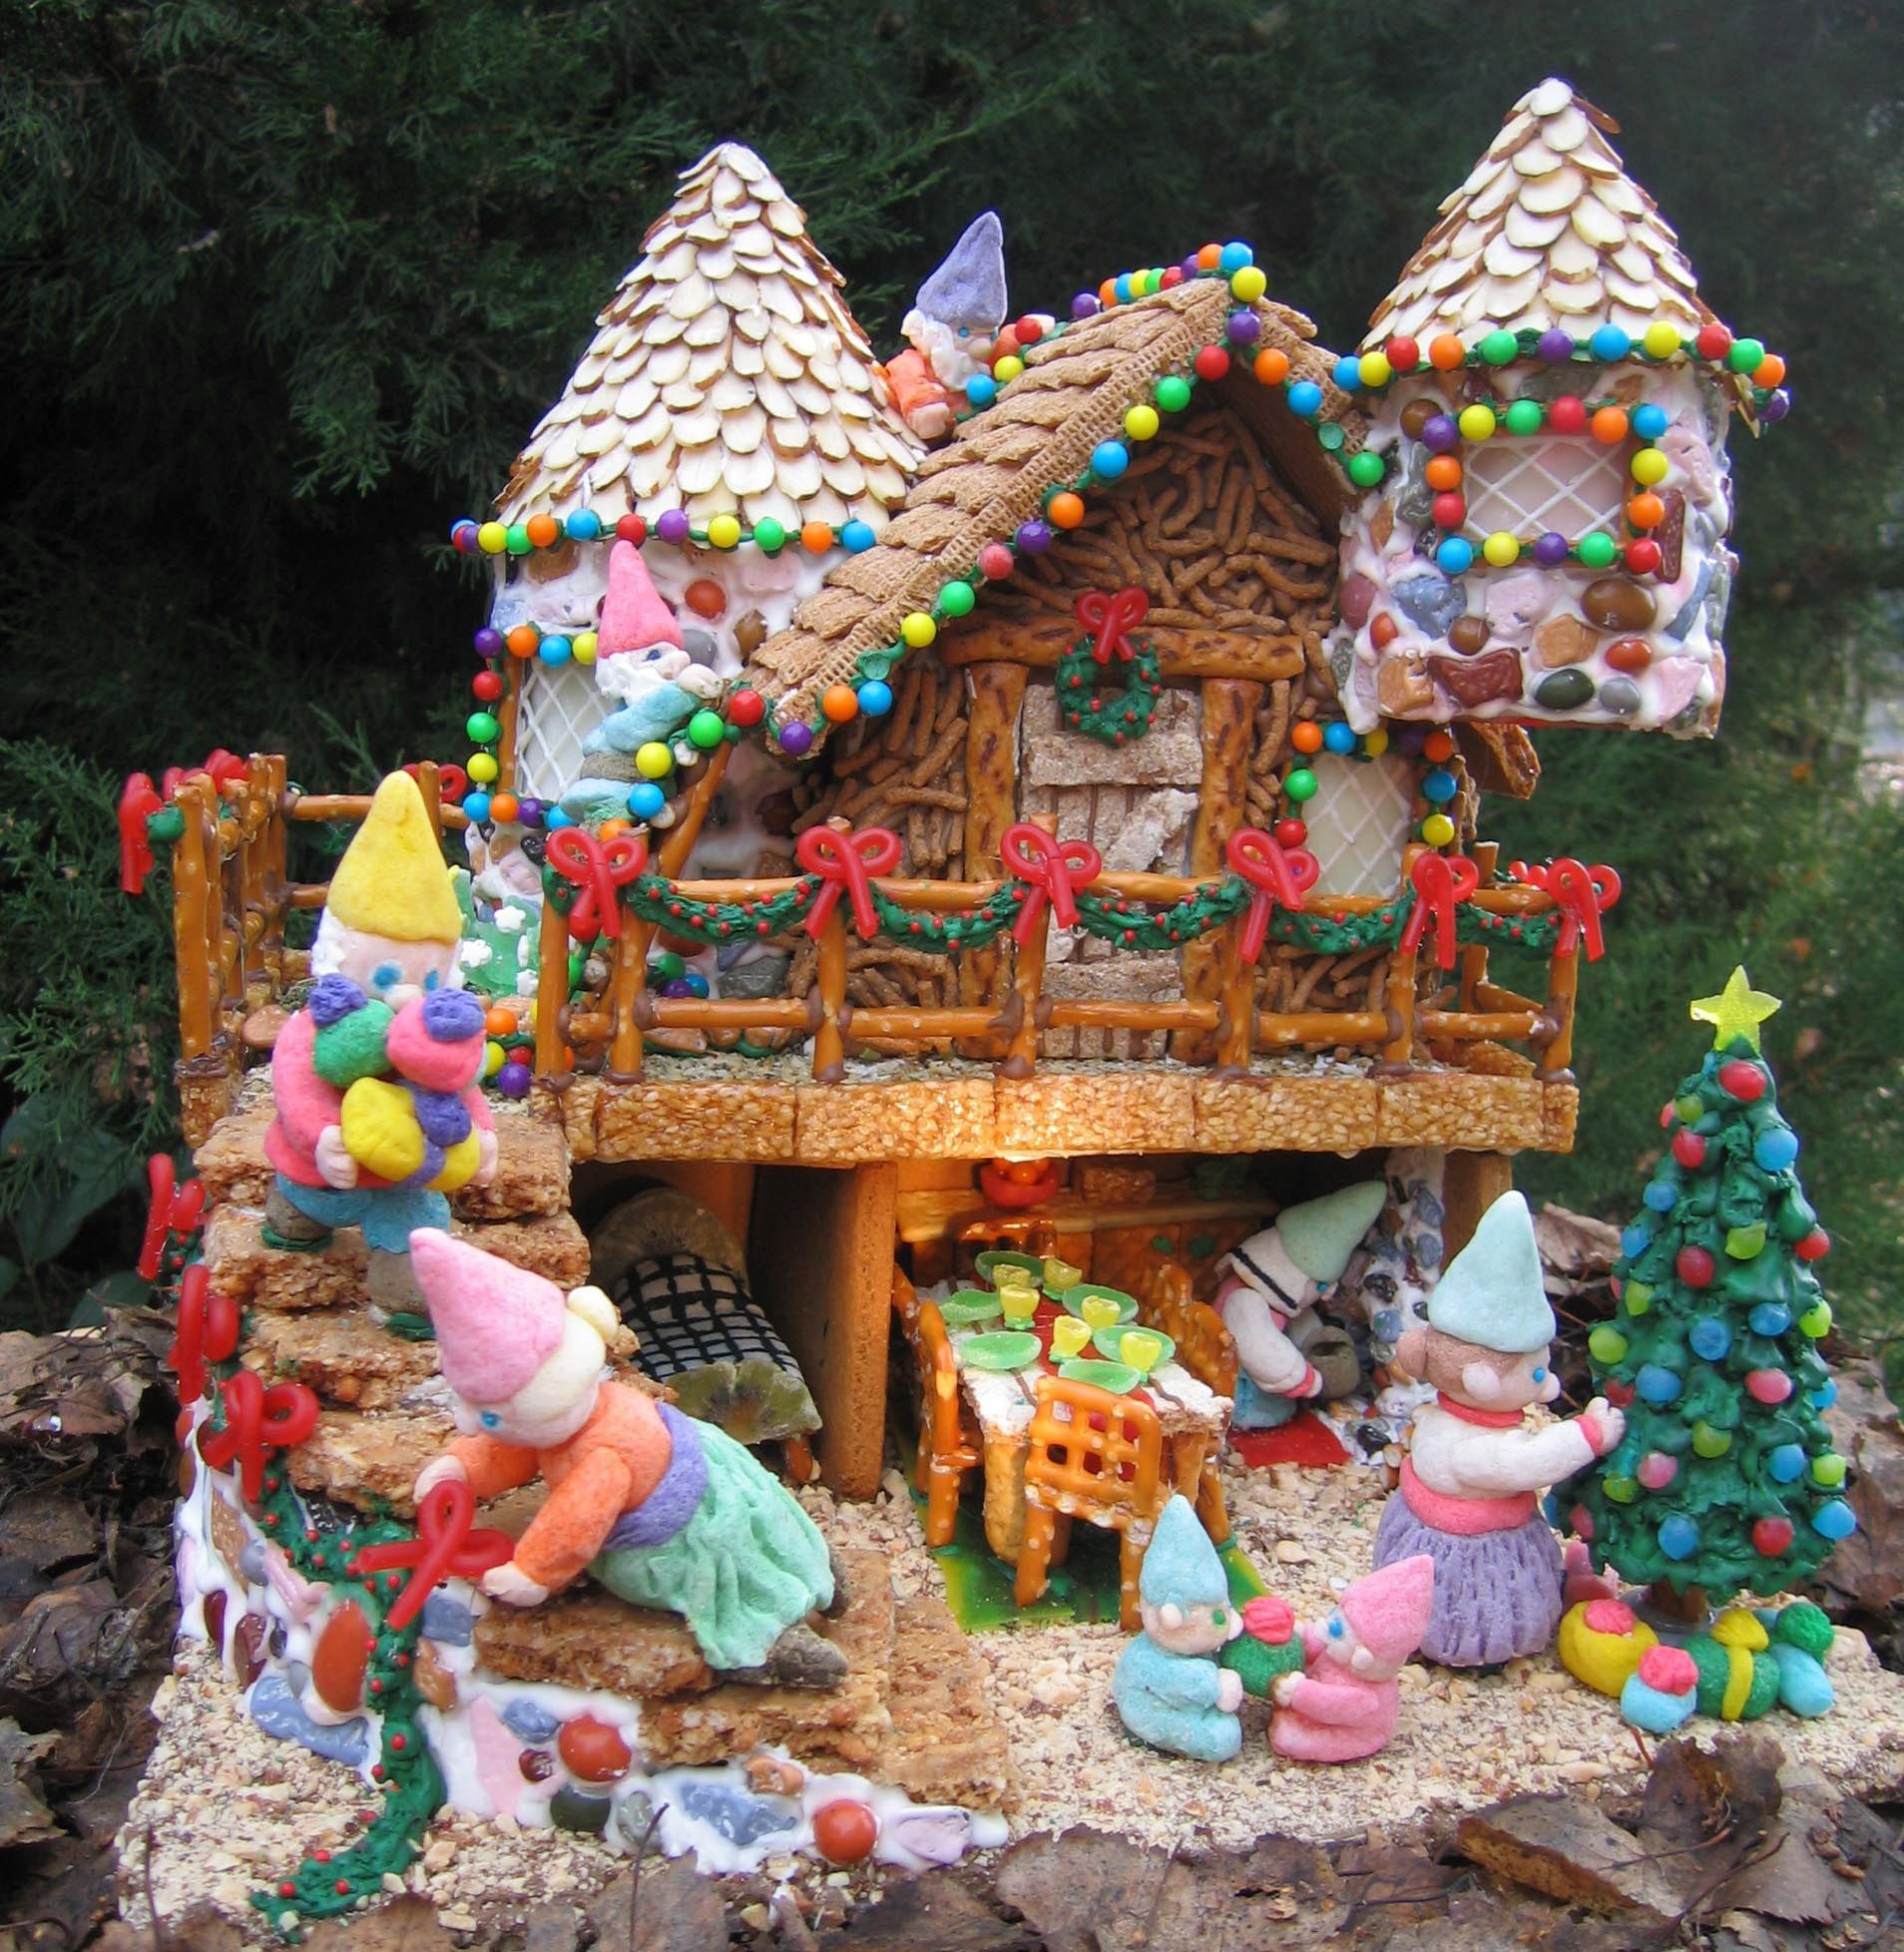 Gingerbread House with nontraditional decorations